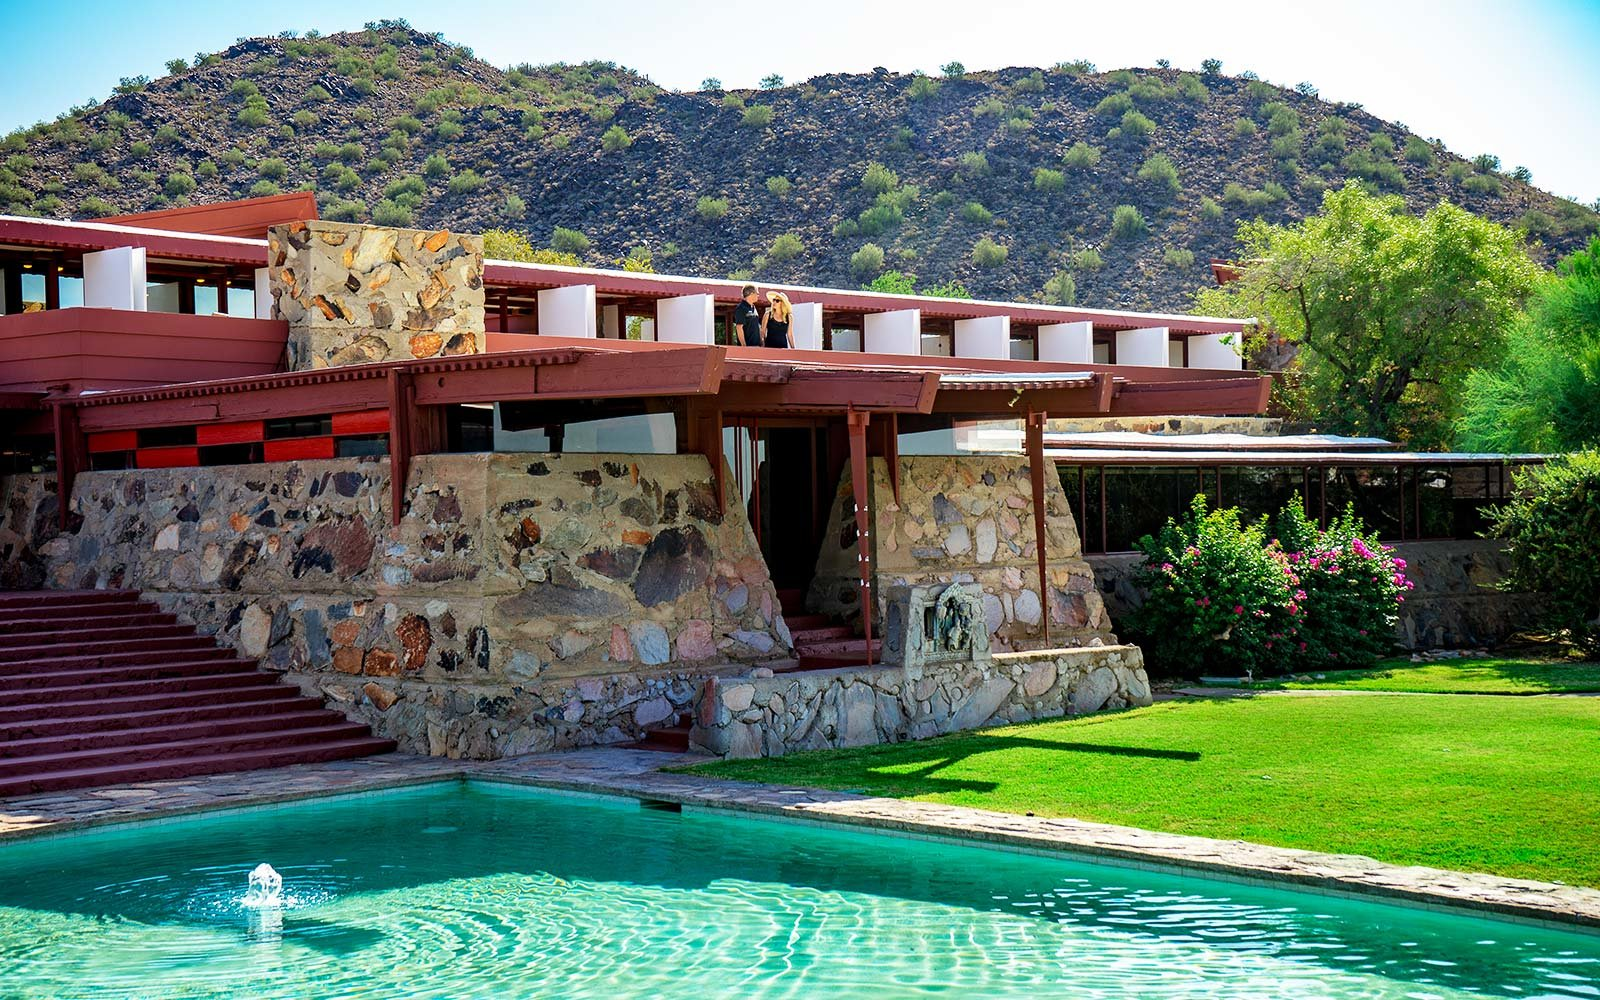 Frank Lloyd Wright 10 Must See Houses Designed By Architect Frank Lloyd Wright